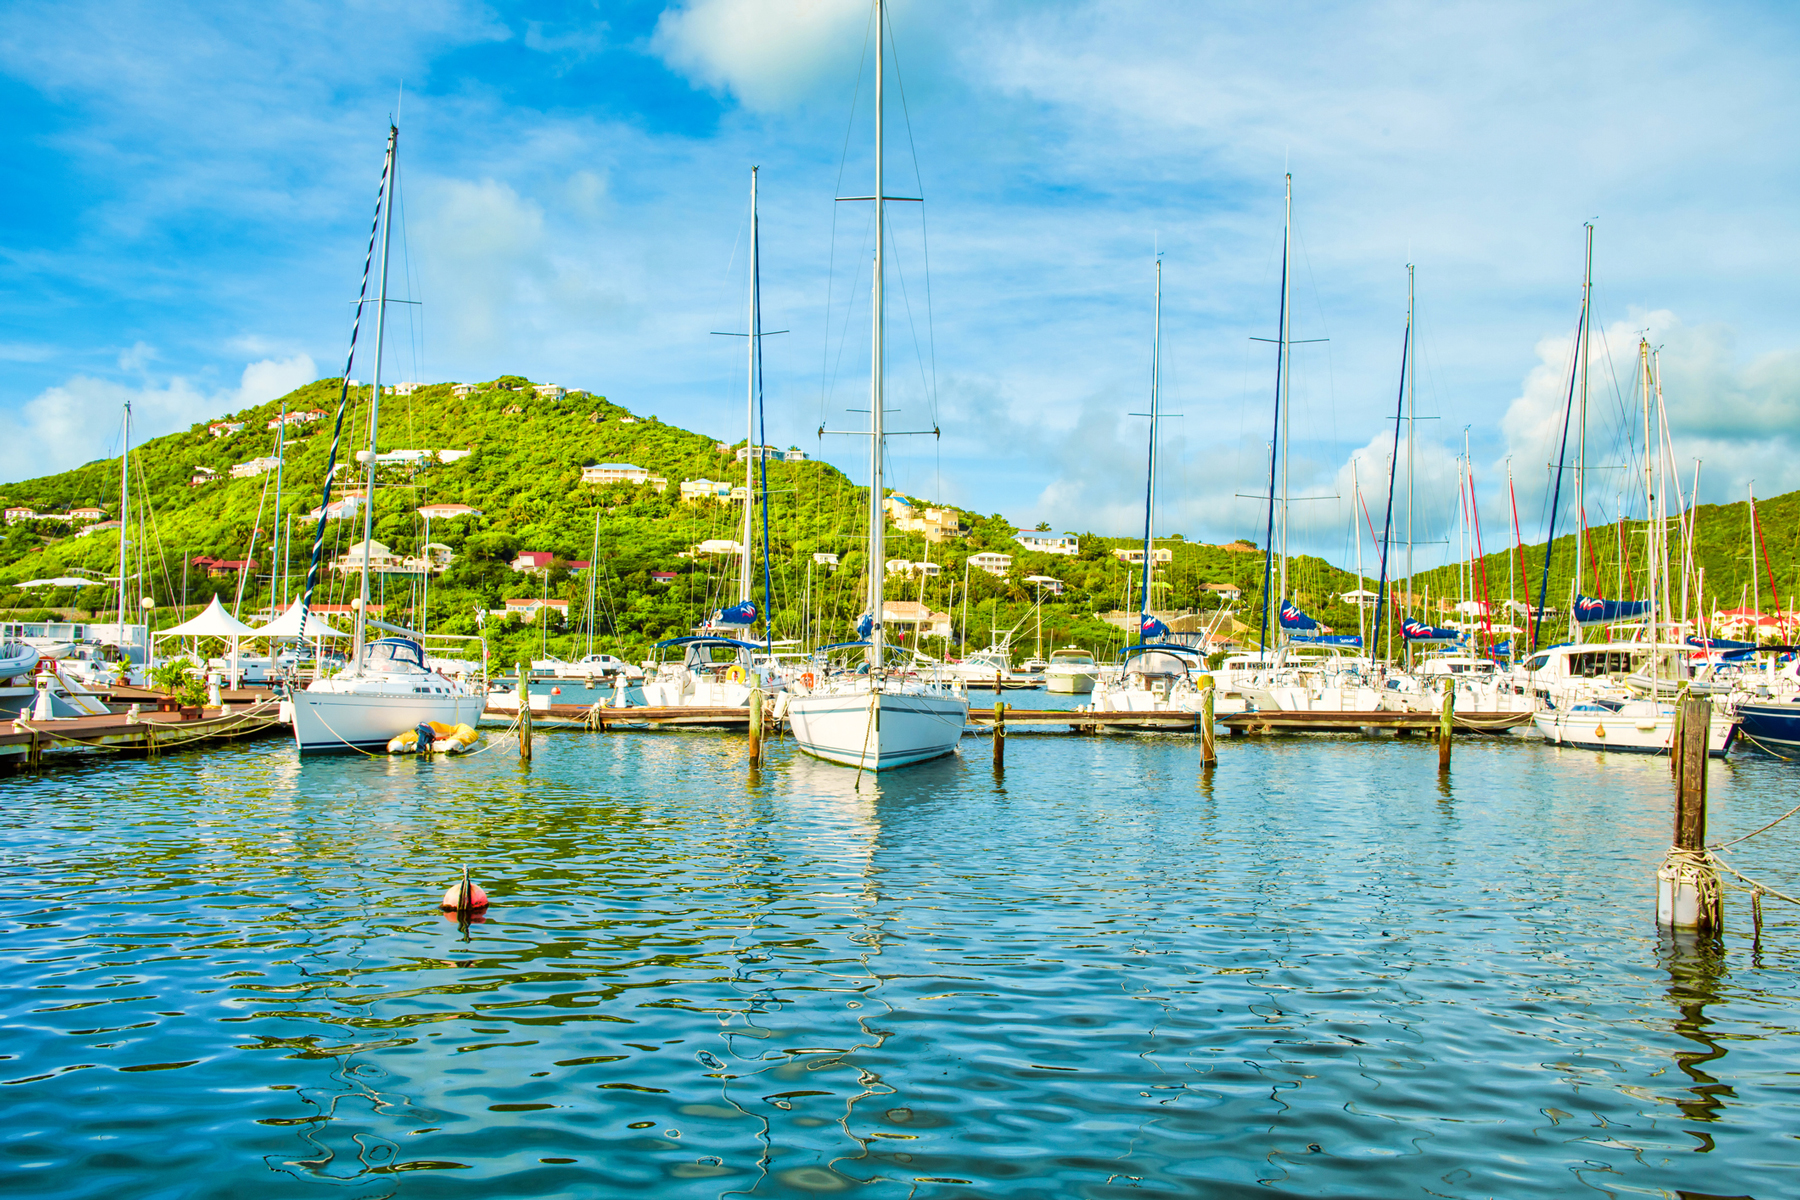 An image of a marina early in the morning at St Martin, the French side of this Caribbean island.